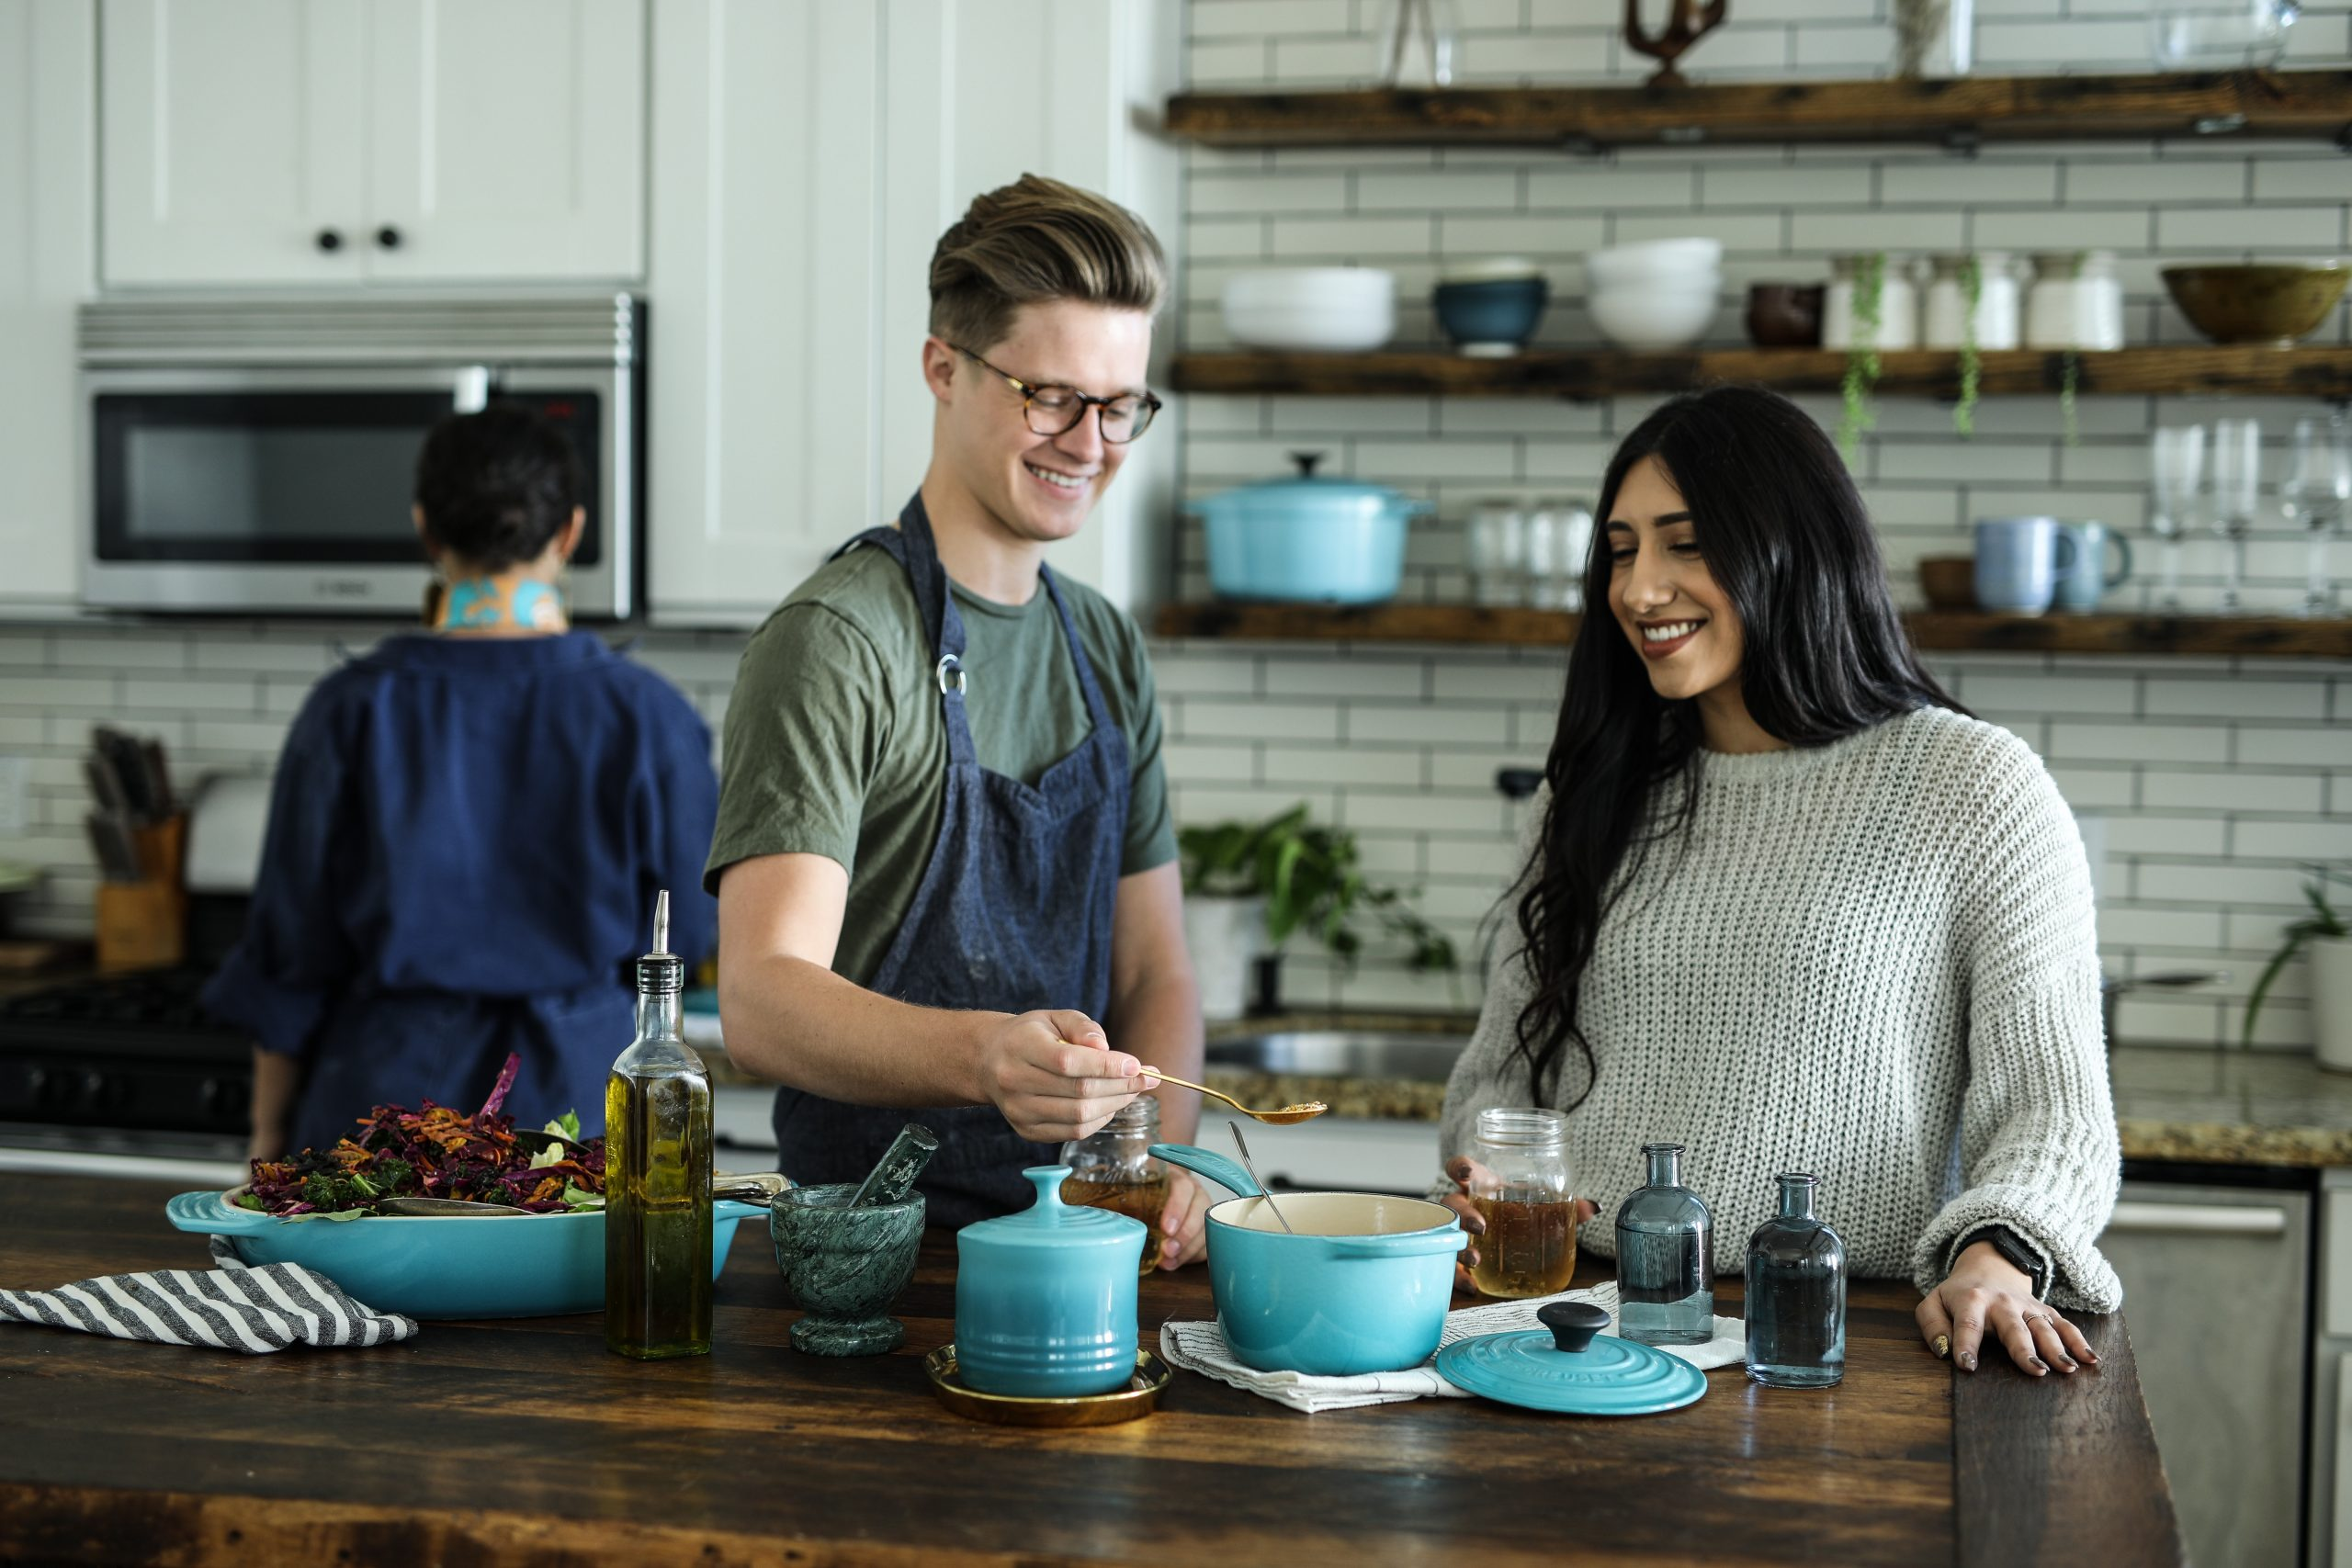 Image shows two people, one male one female, stood in a kitchen at the island, surrounded by blue Le Creuset-style kitchen pots and food. One person just visible in the background stood at the oven.